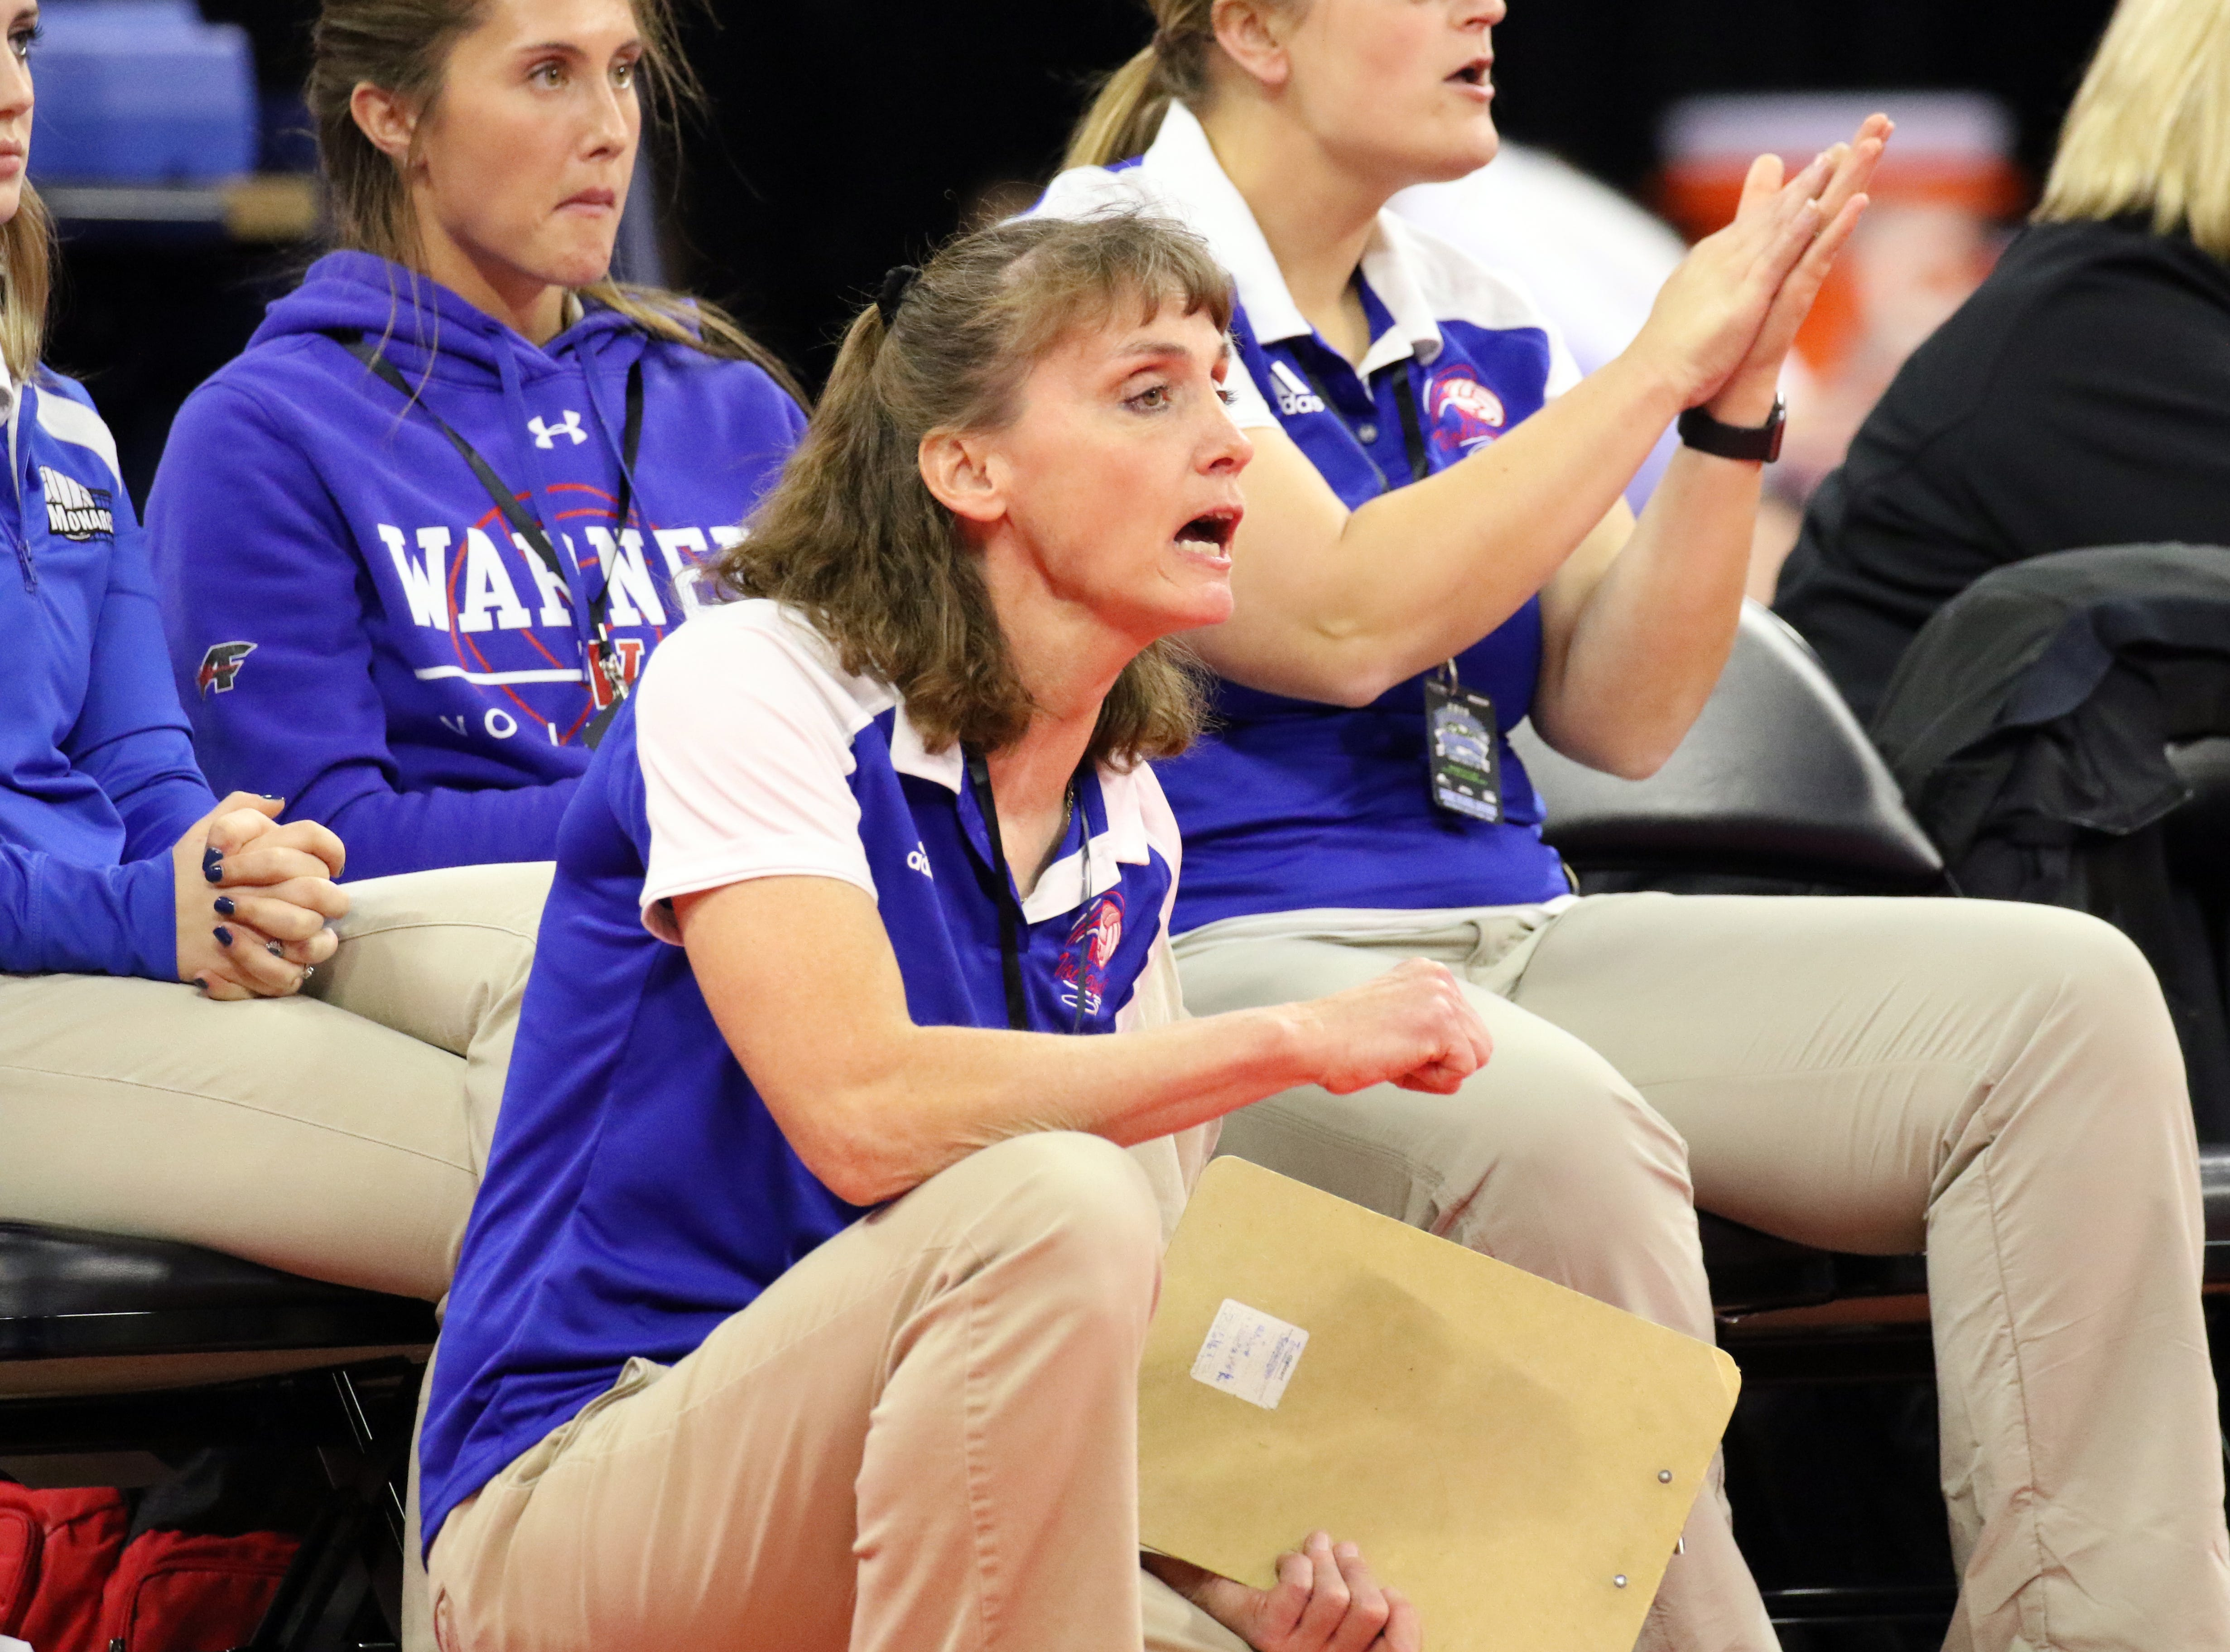 Warner head coach, Kari Jung shouts instructions during Friday's Class B semifinal match against Chester Area on Friday in Sioux Falls.